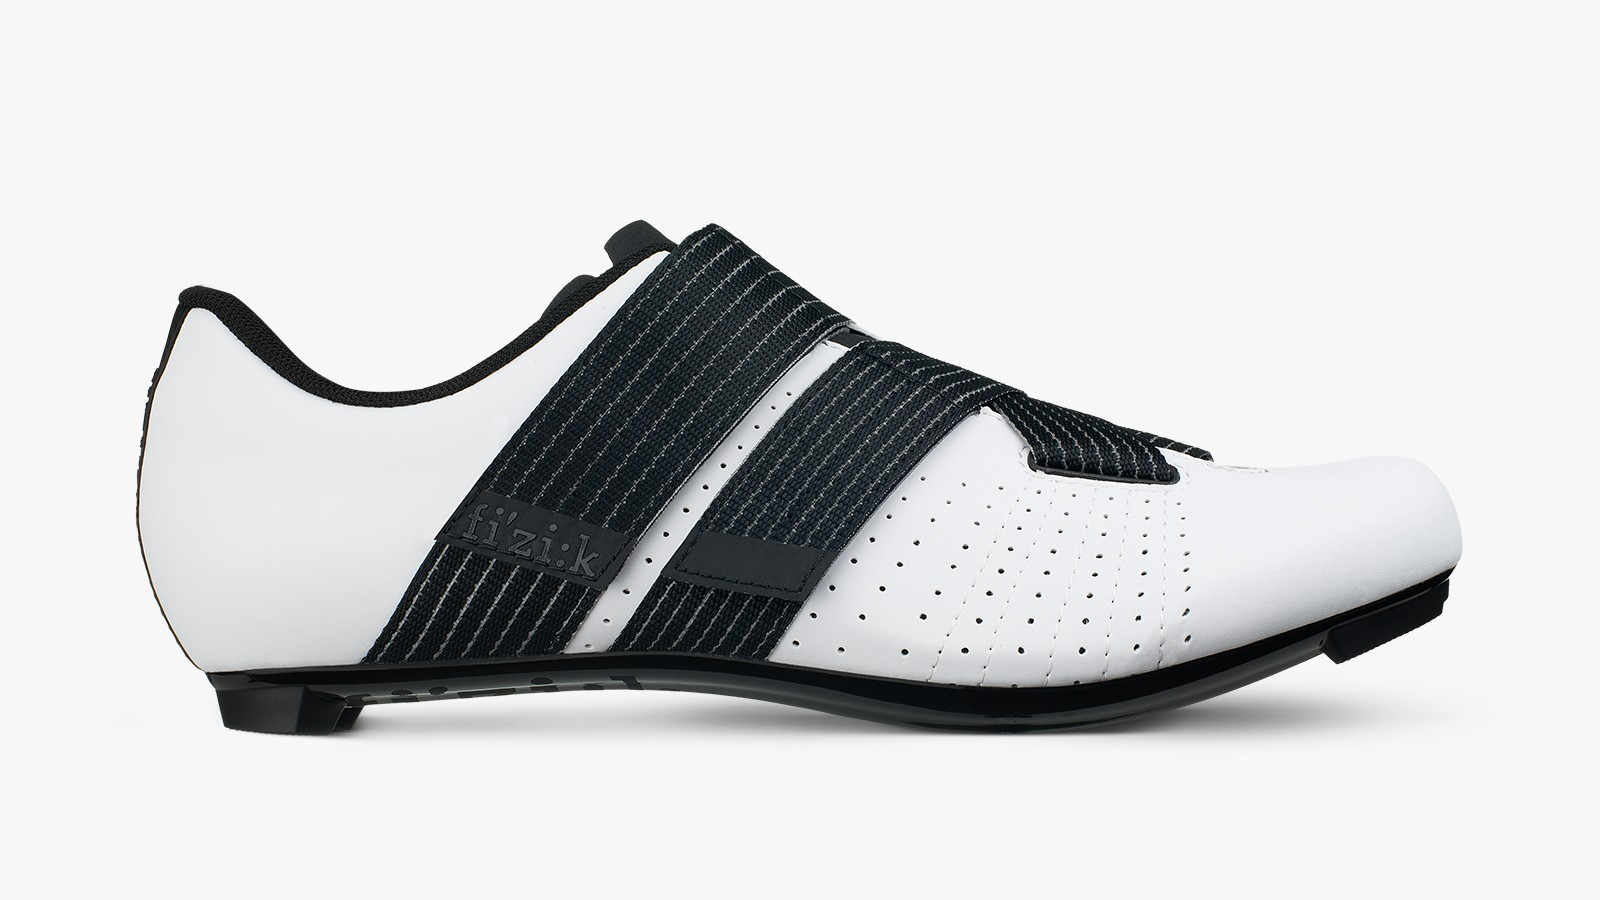 We rather like the sleek looks of these road kicks